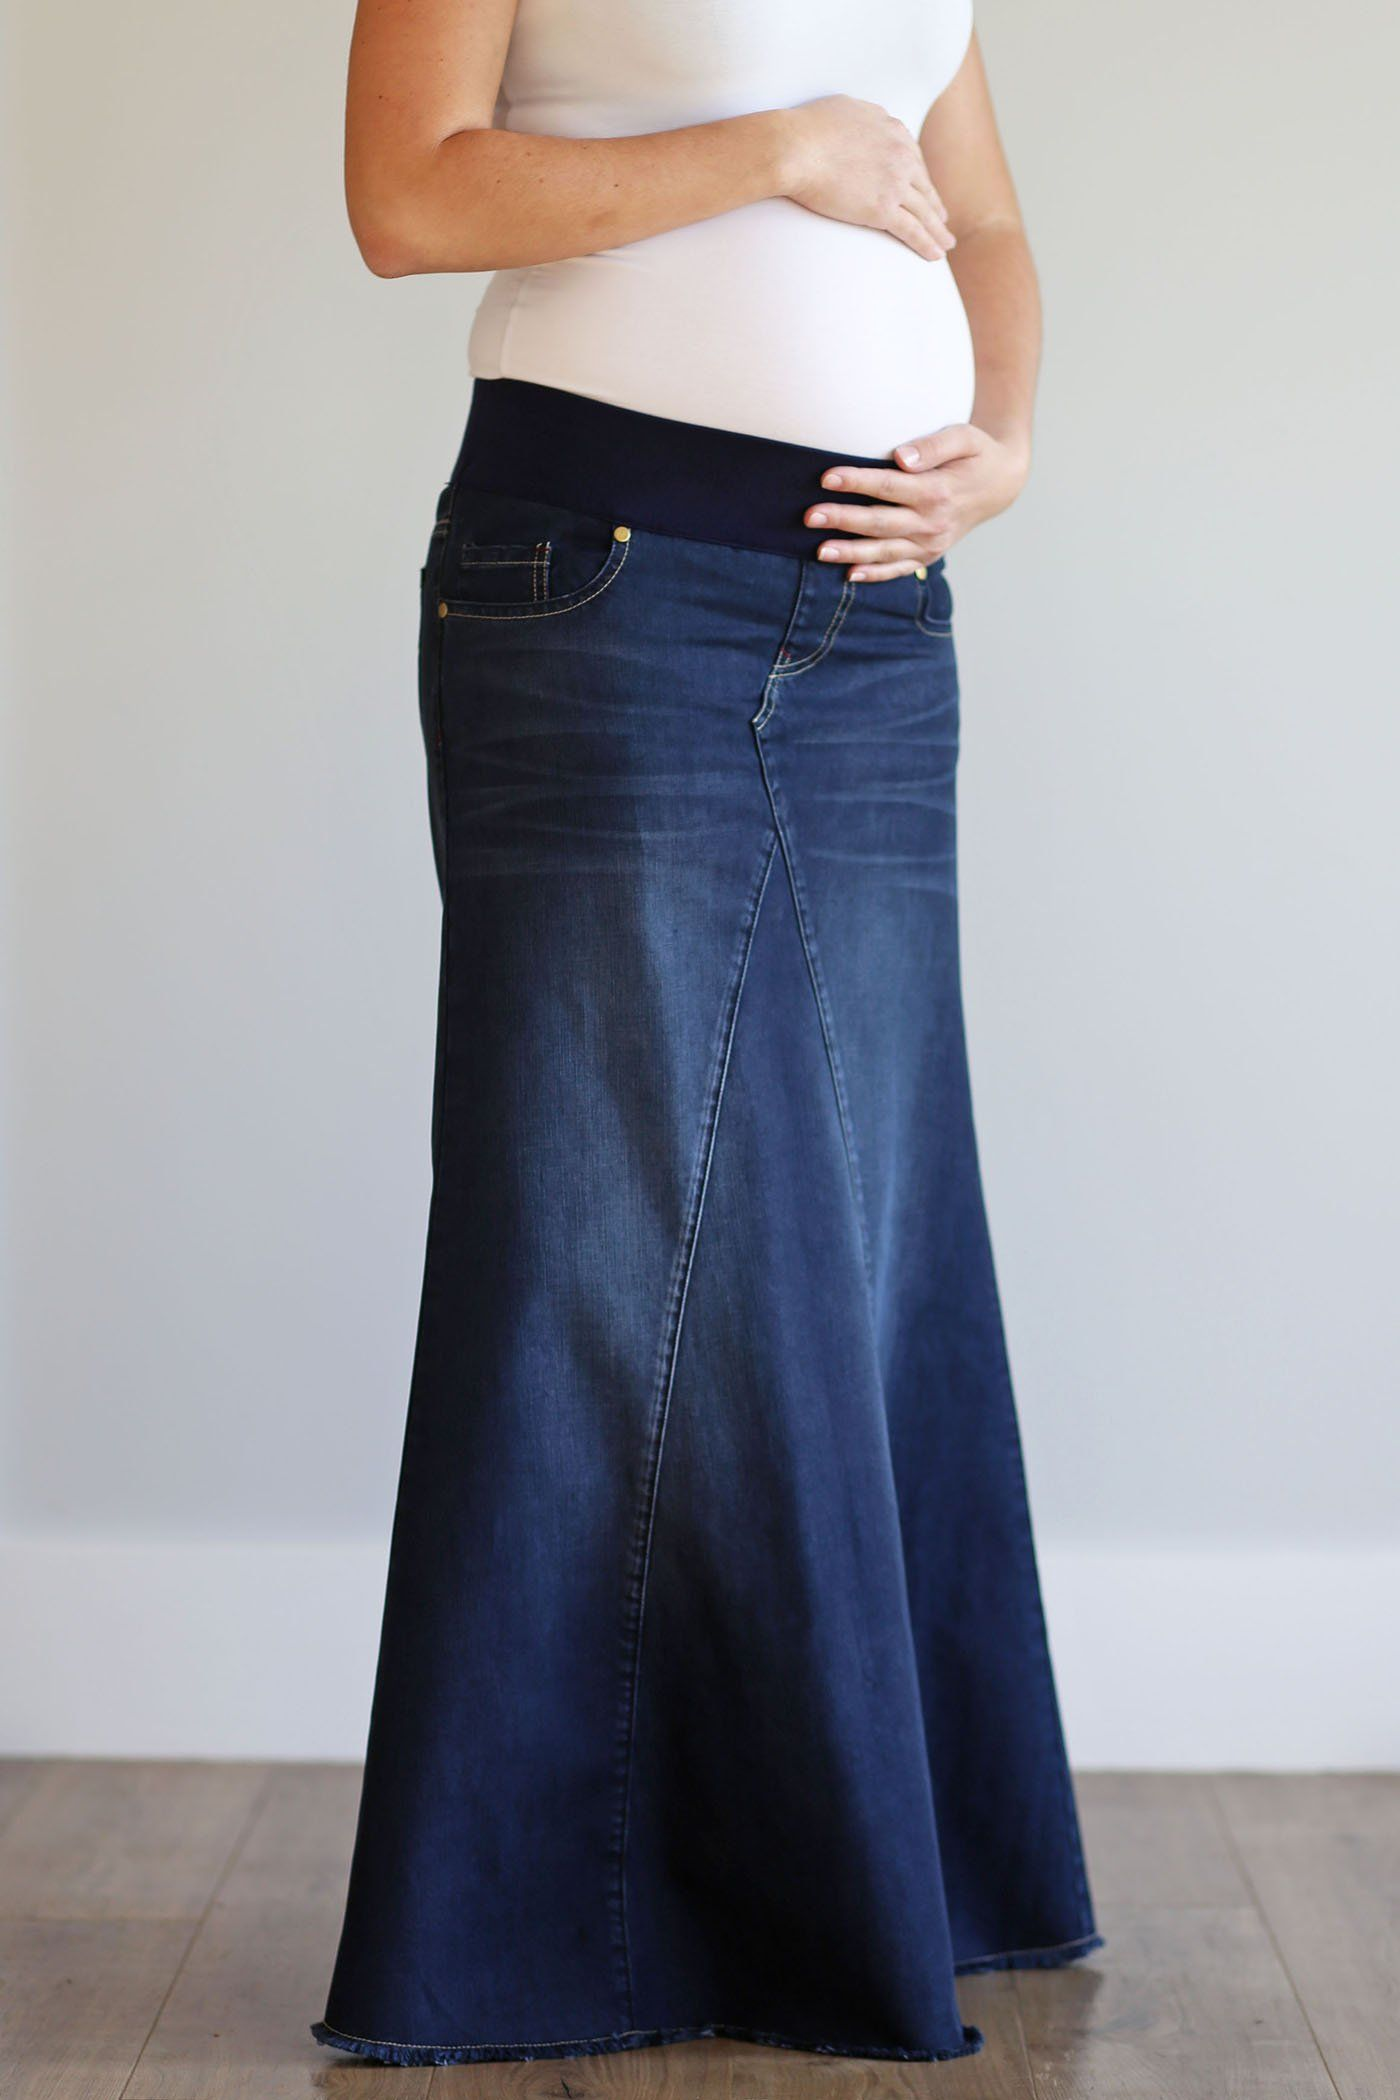 "Womens Jeans Skirt 23/"" Knee Length Stretch Size 8"